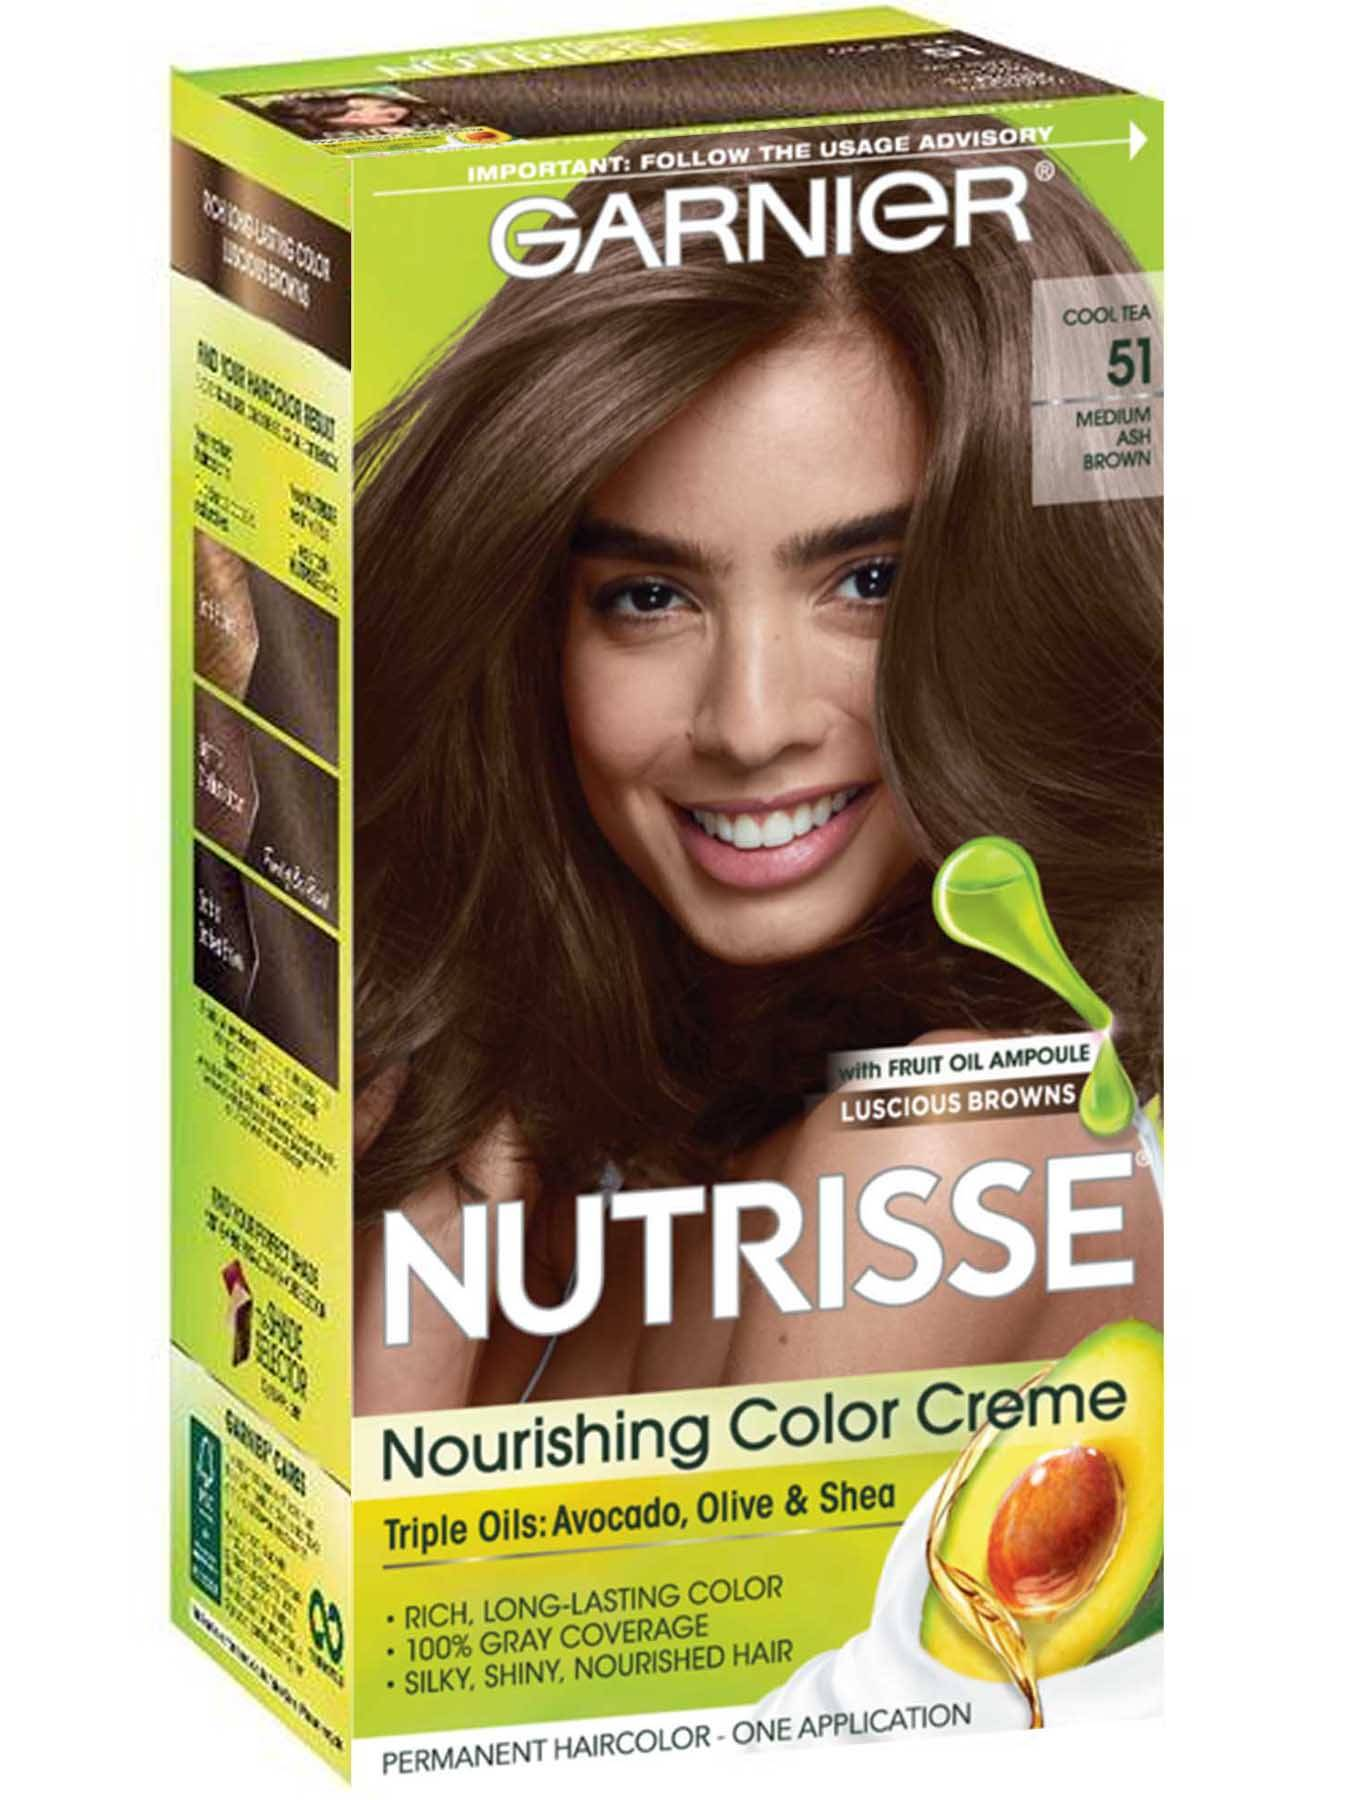 Nutrisse Nourishing Color Creme - Medium Ash Brown 51 - Garnier